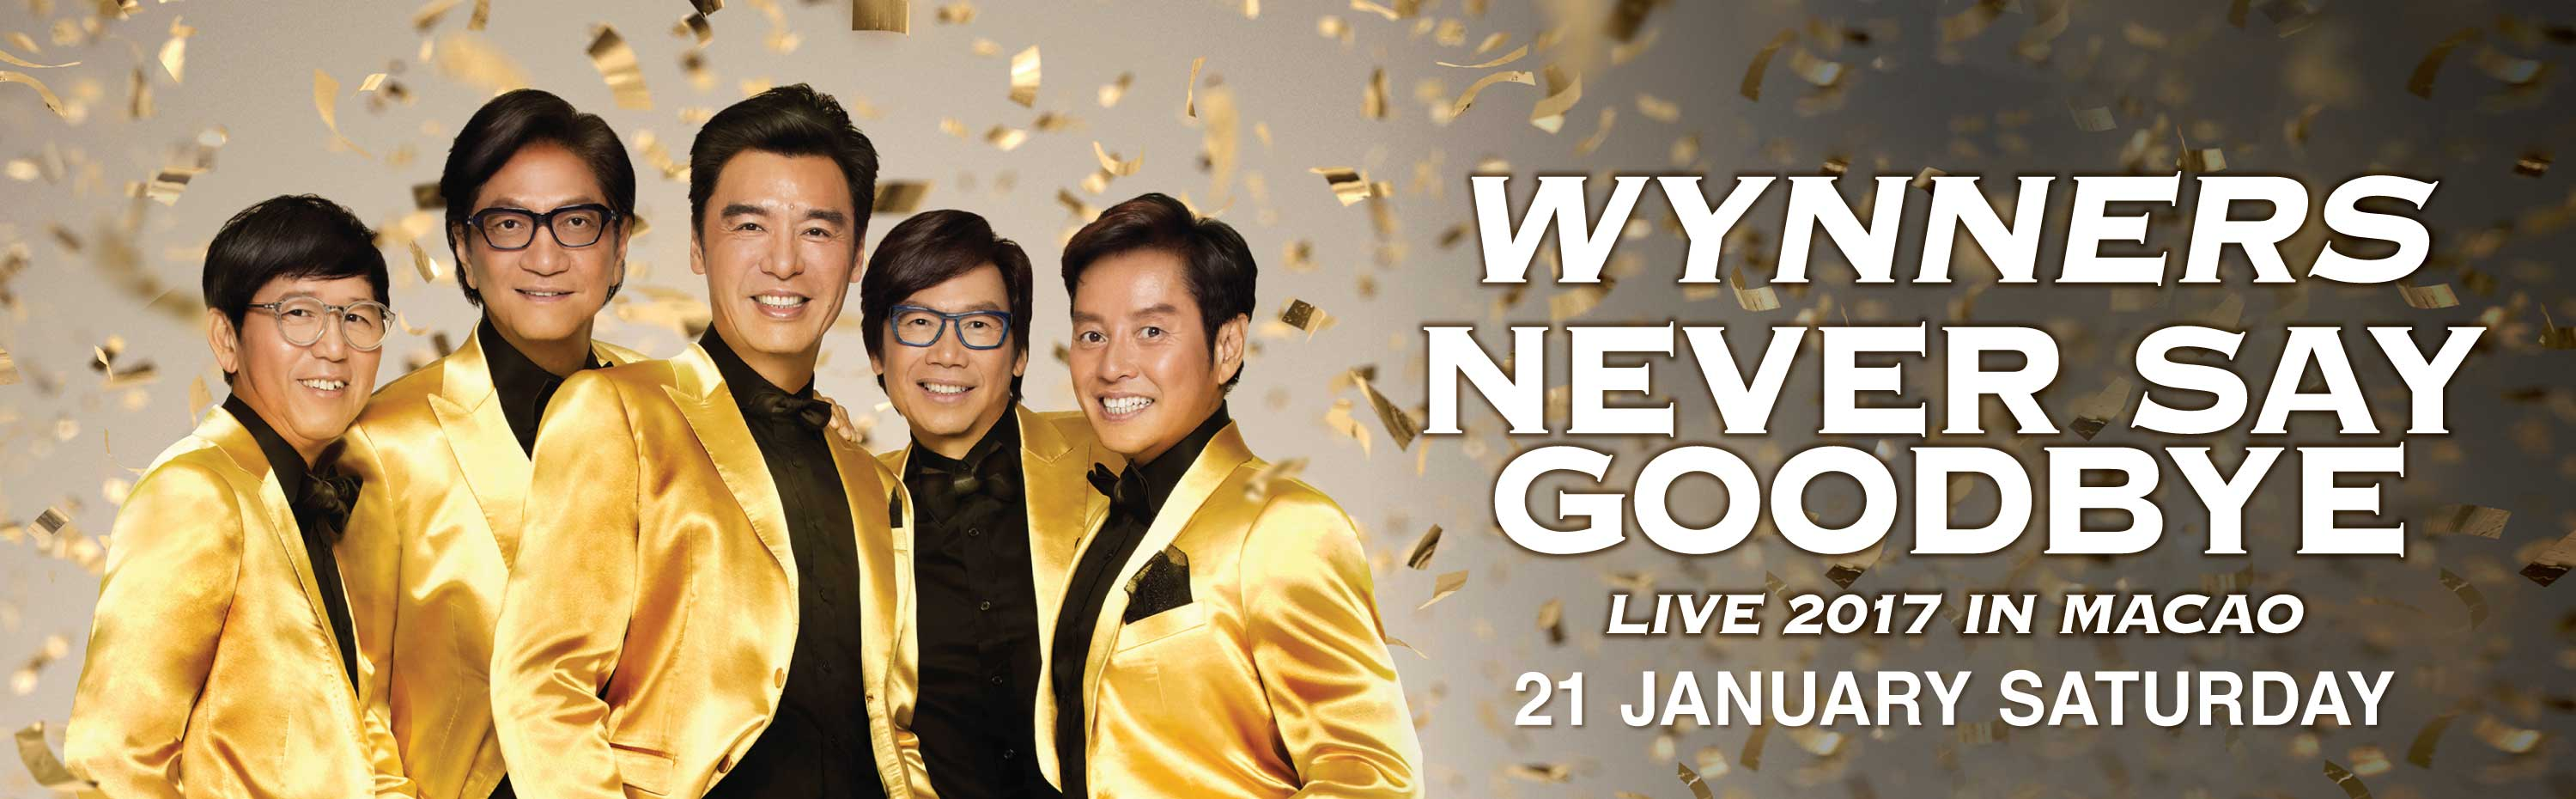 WYNNERS NEVER SAY GOODBYE LIVE 2017 IN MACAO